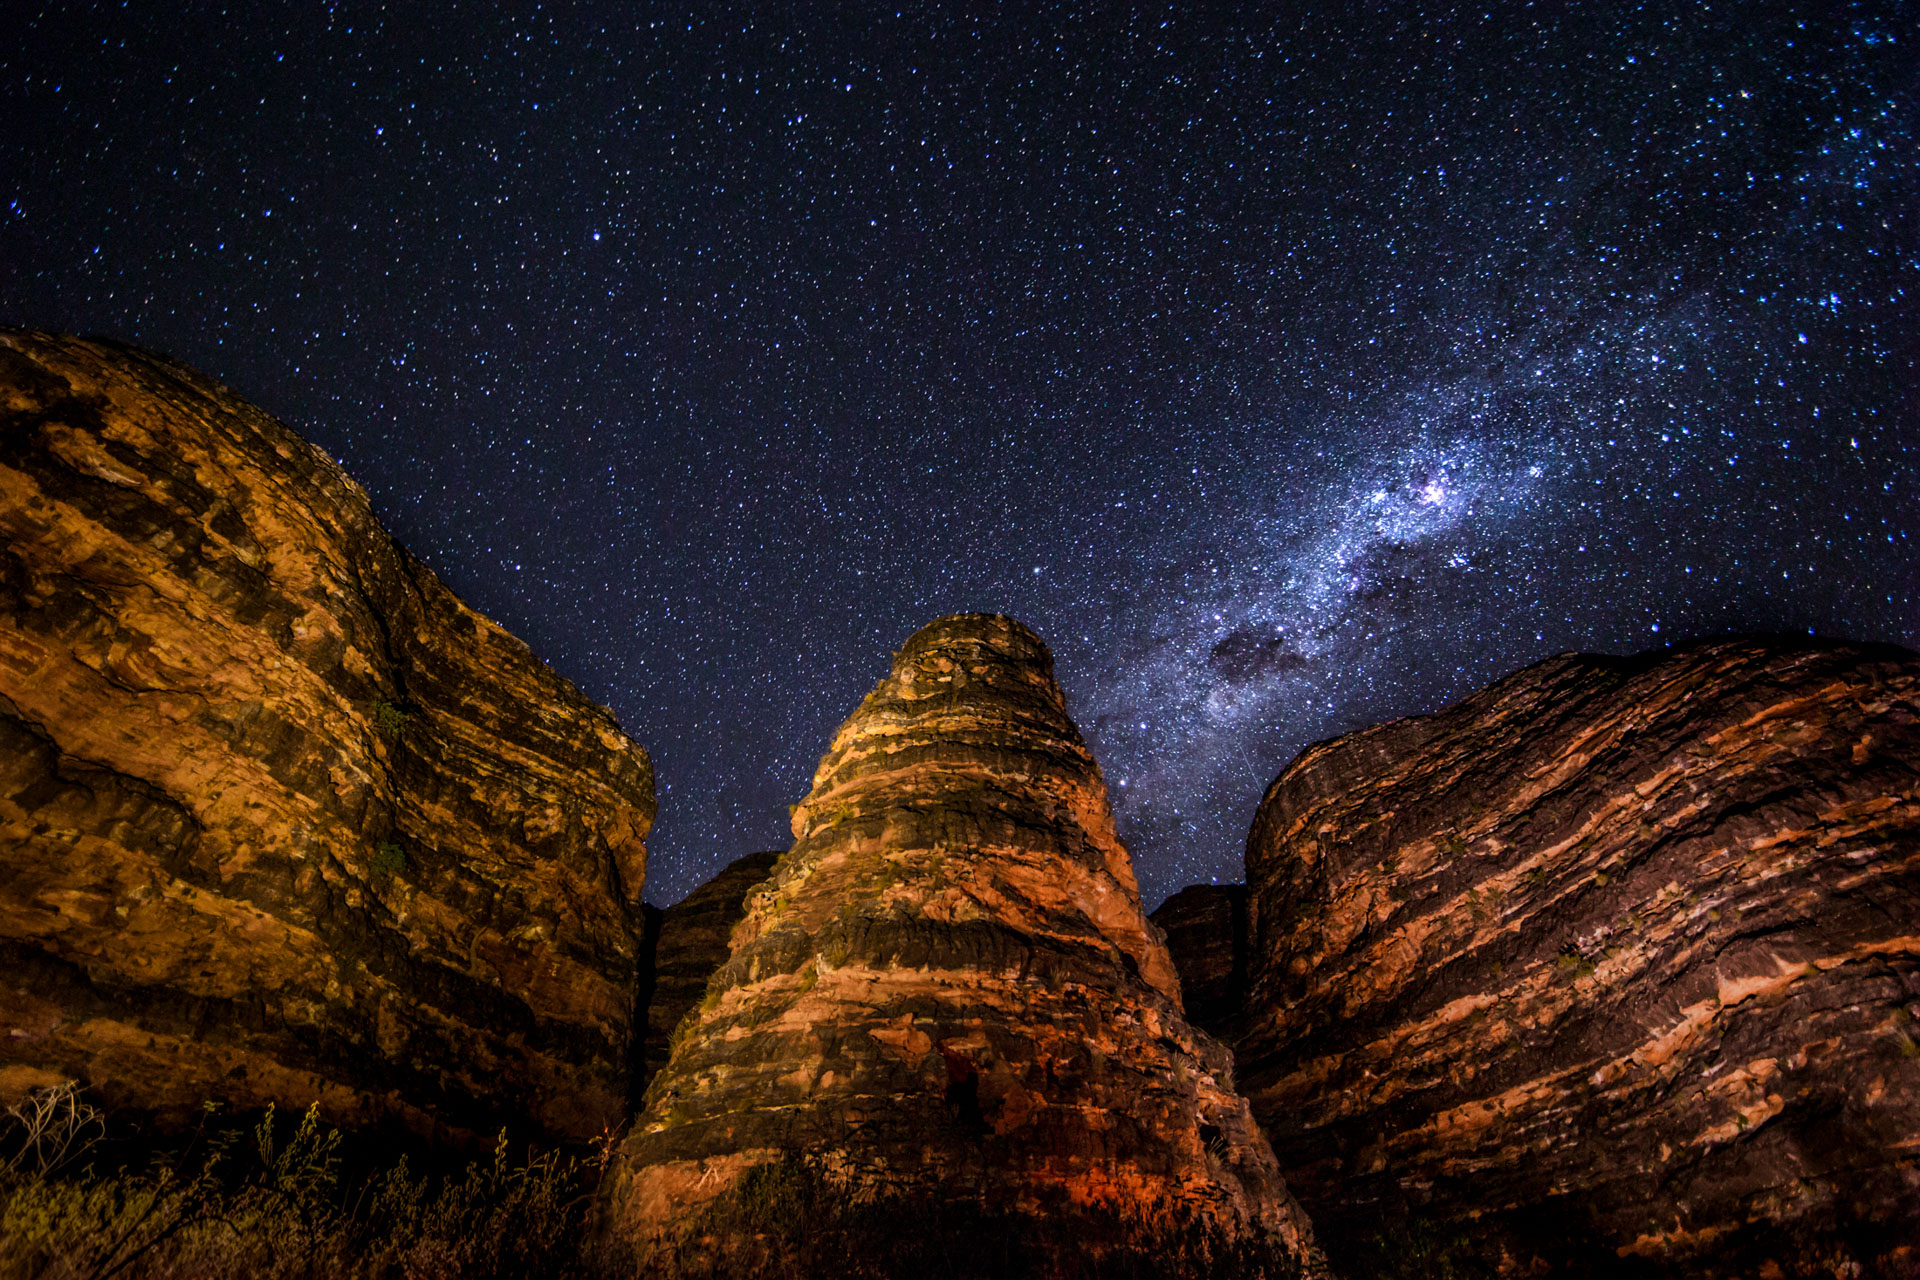 Bungle Bungle night sky Gallery Australia